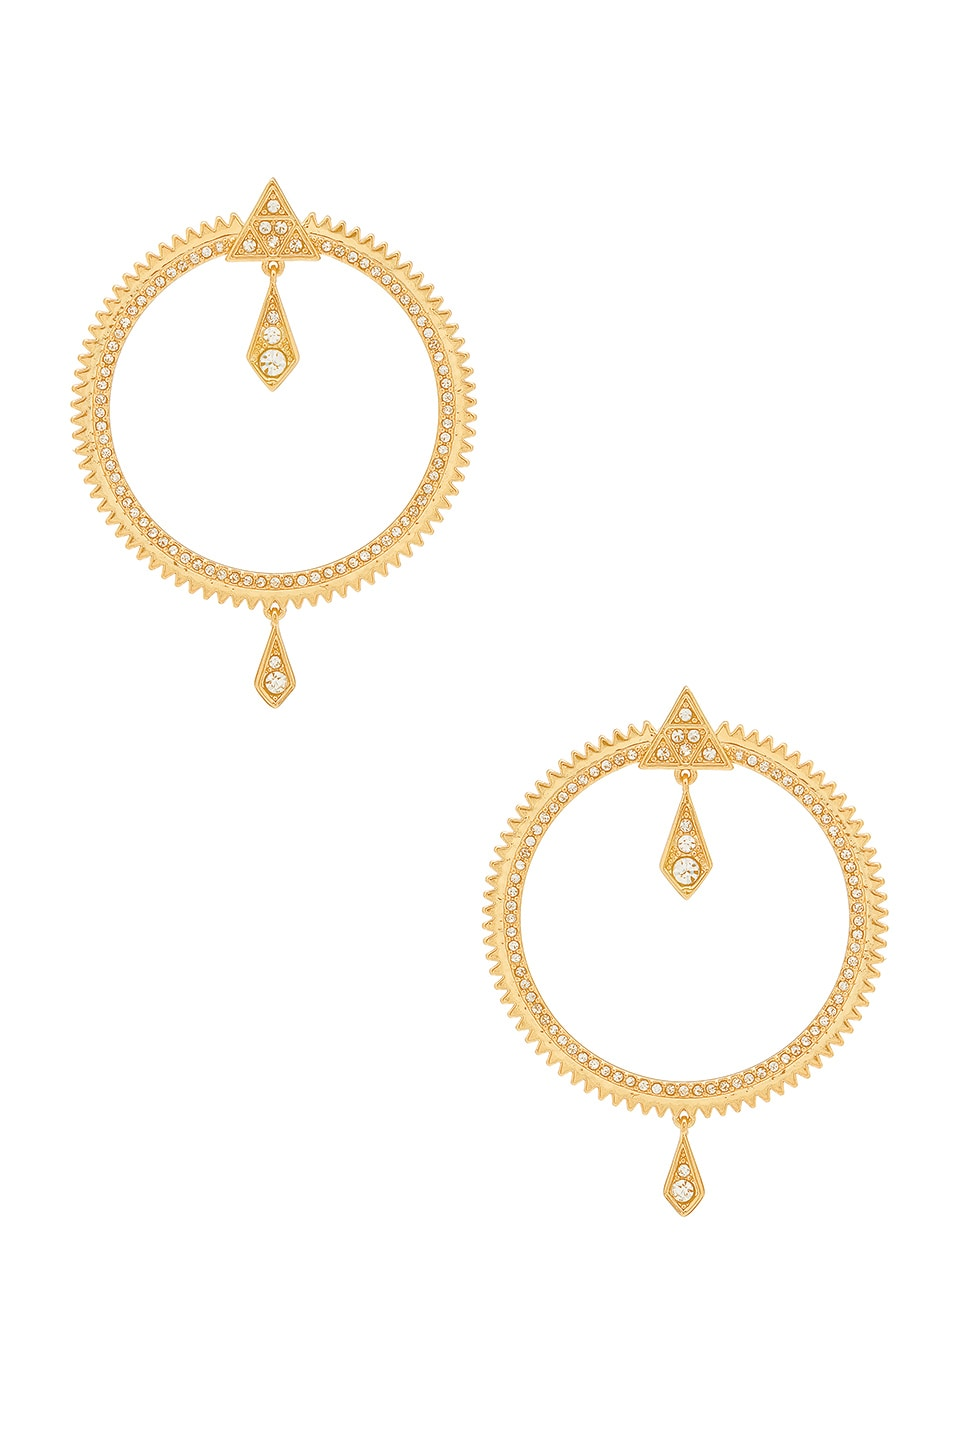 Luv AJ Pave Kite Statement Hoops in 14K Antique Gold